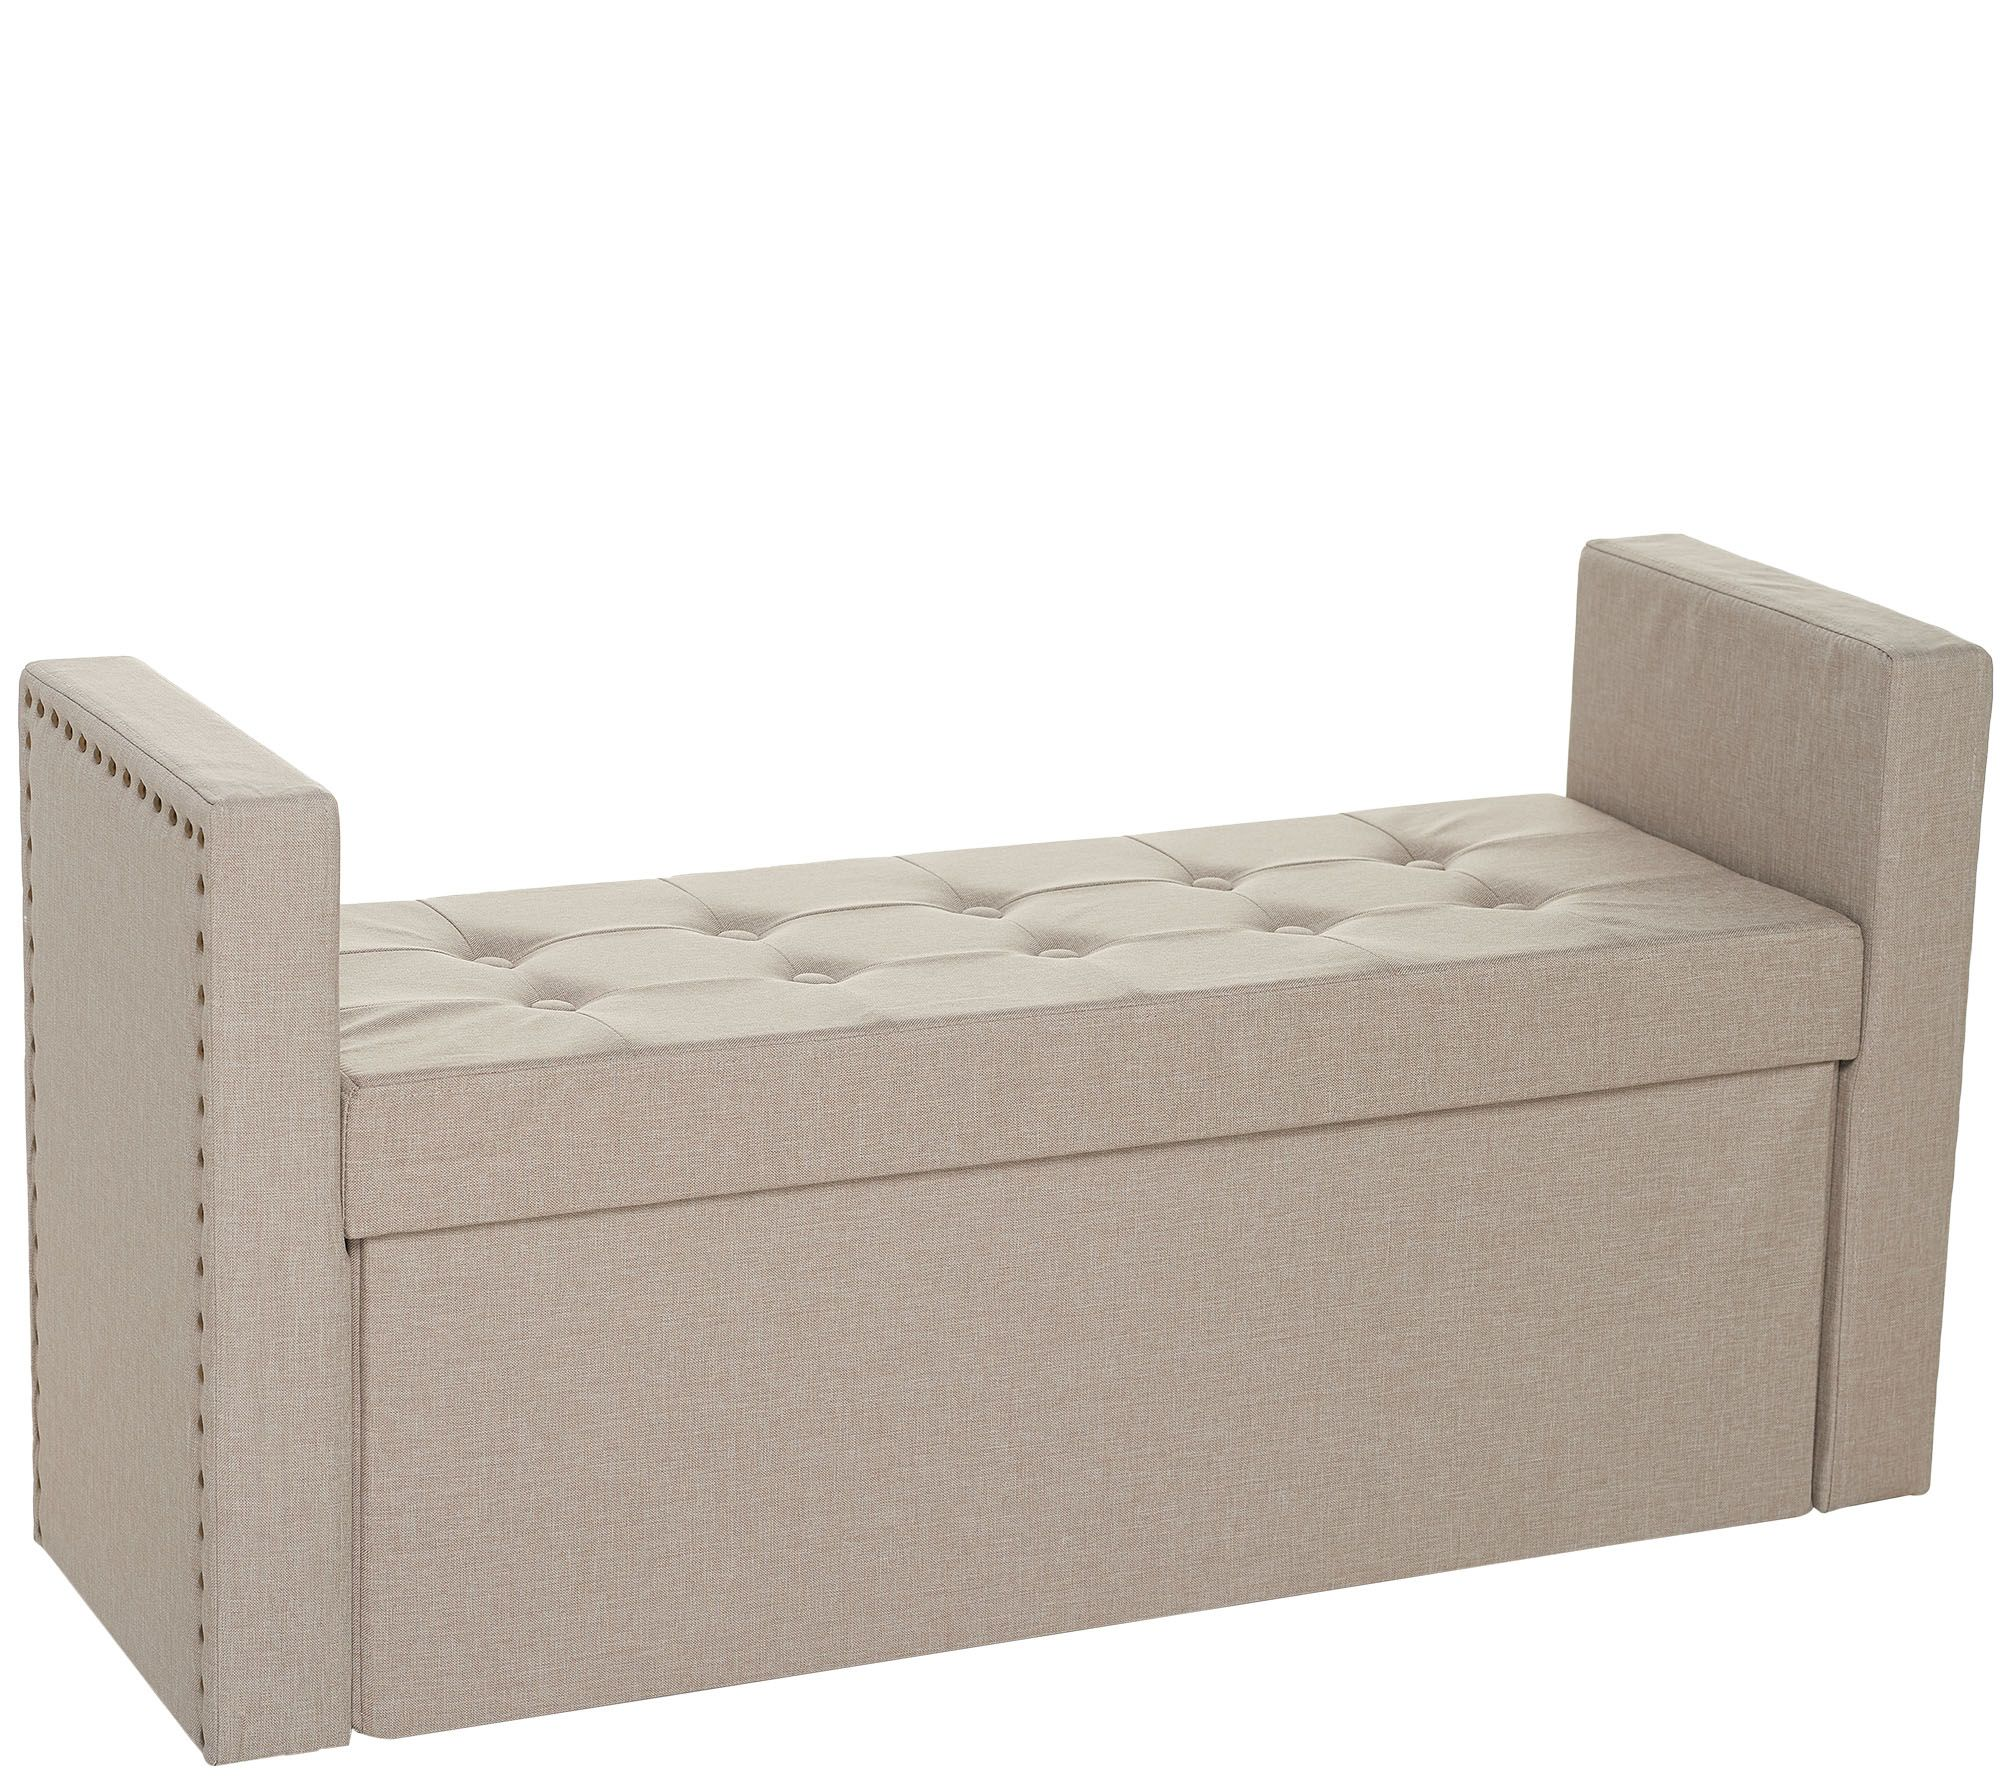 Awesome Inspire Me Home Decor 45 Collapsible Storage Bench With Arms Qvc Com Machost Co Dining Chair Design Ideas Machostcouk